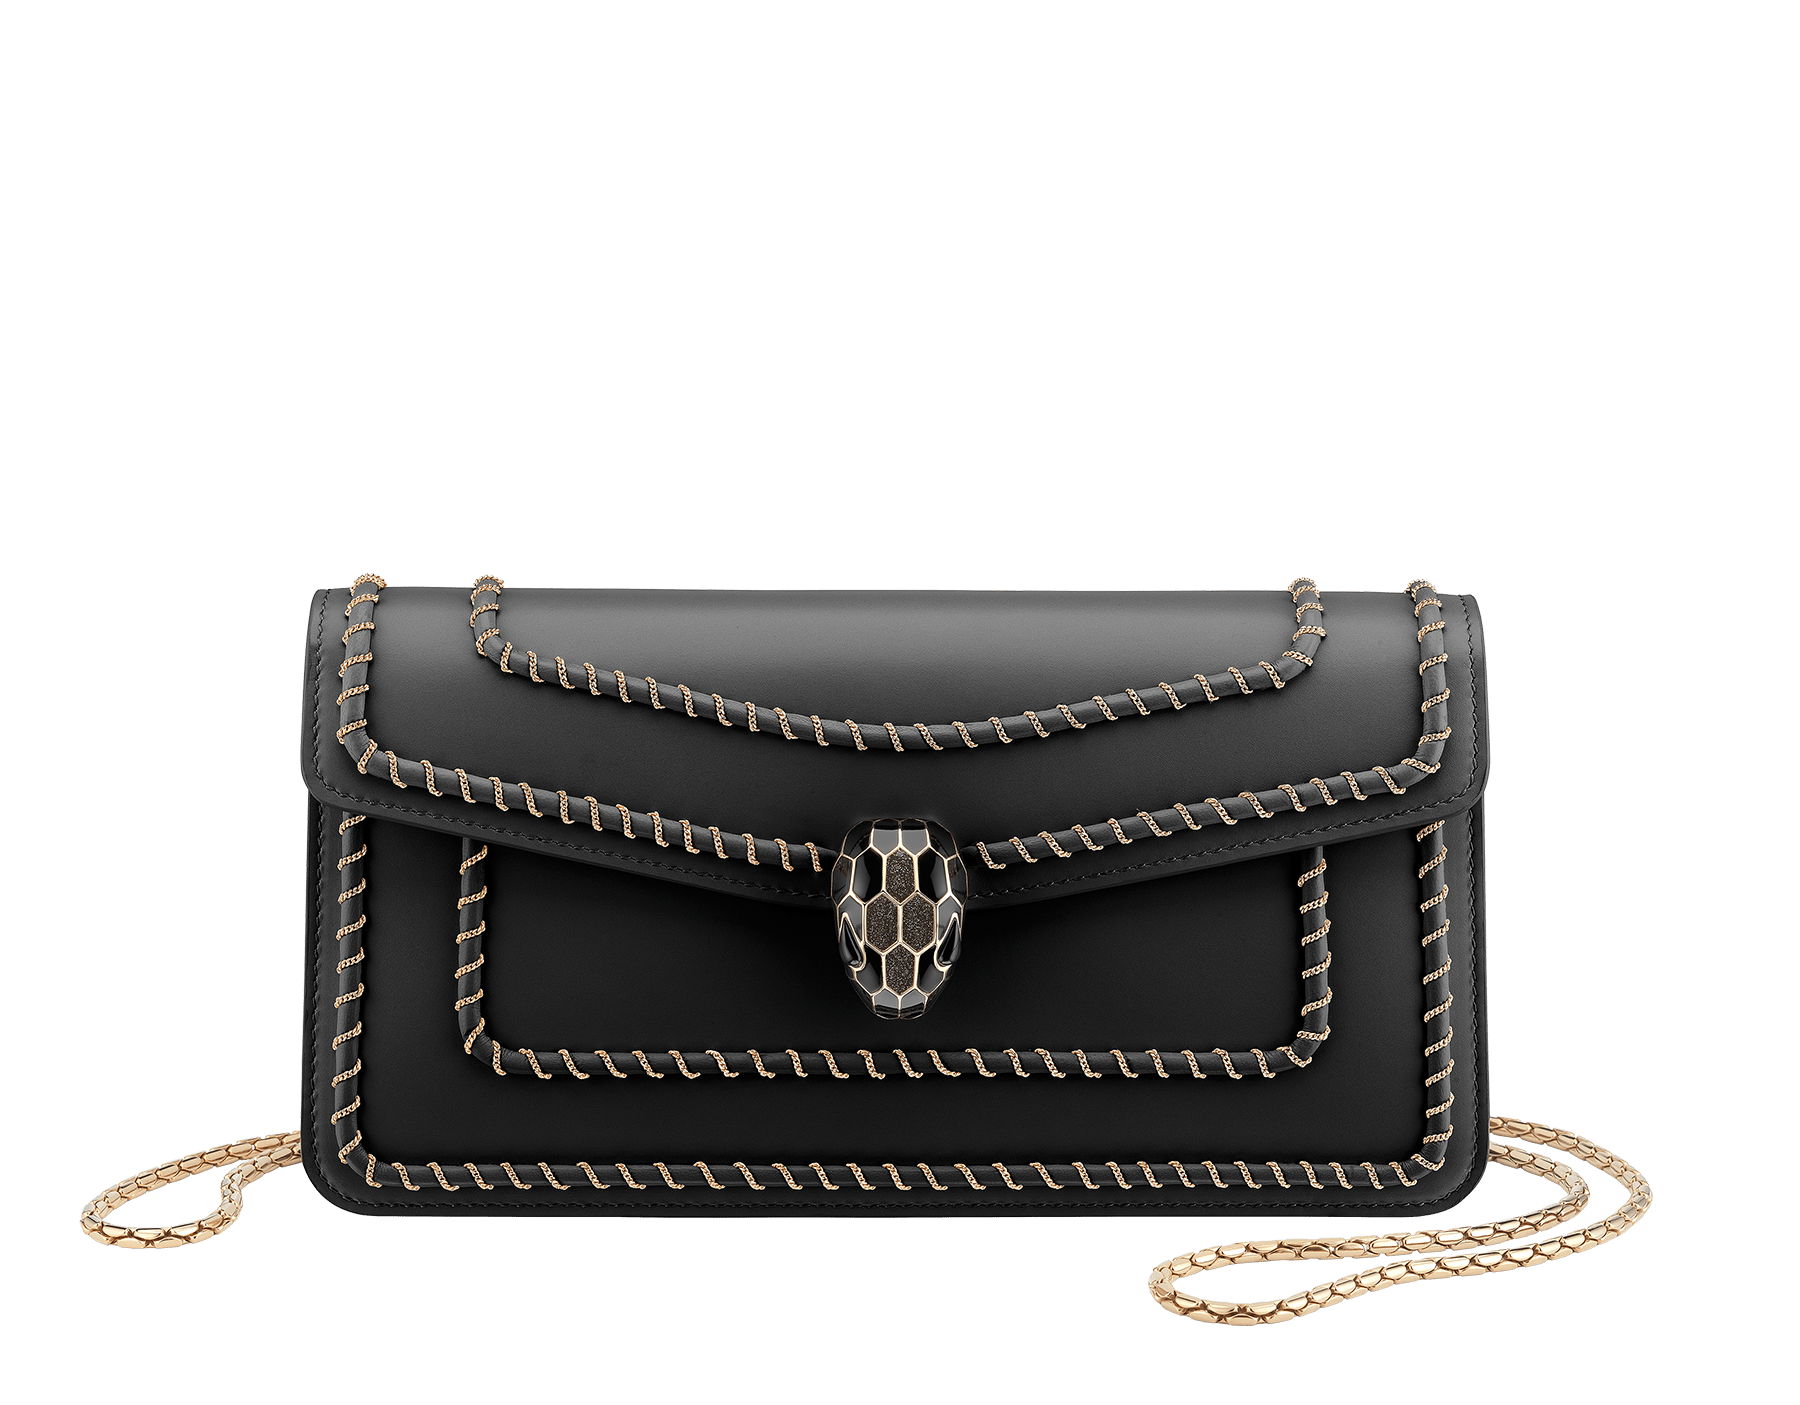 """Serpenti Forever"" shoulder bag in black calf leather, featuring a Woven Chain. Iconic snakehead closure in light gold plated brass enriched with black enamel and black onyx eyes 287456 image 1"